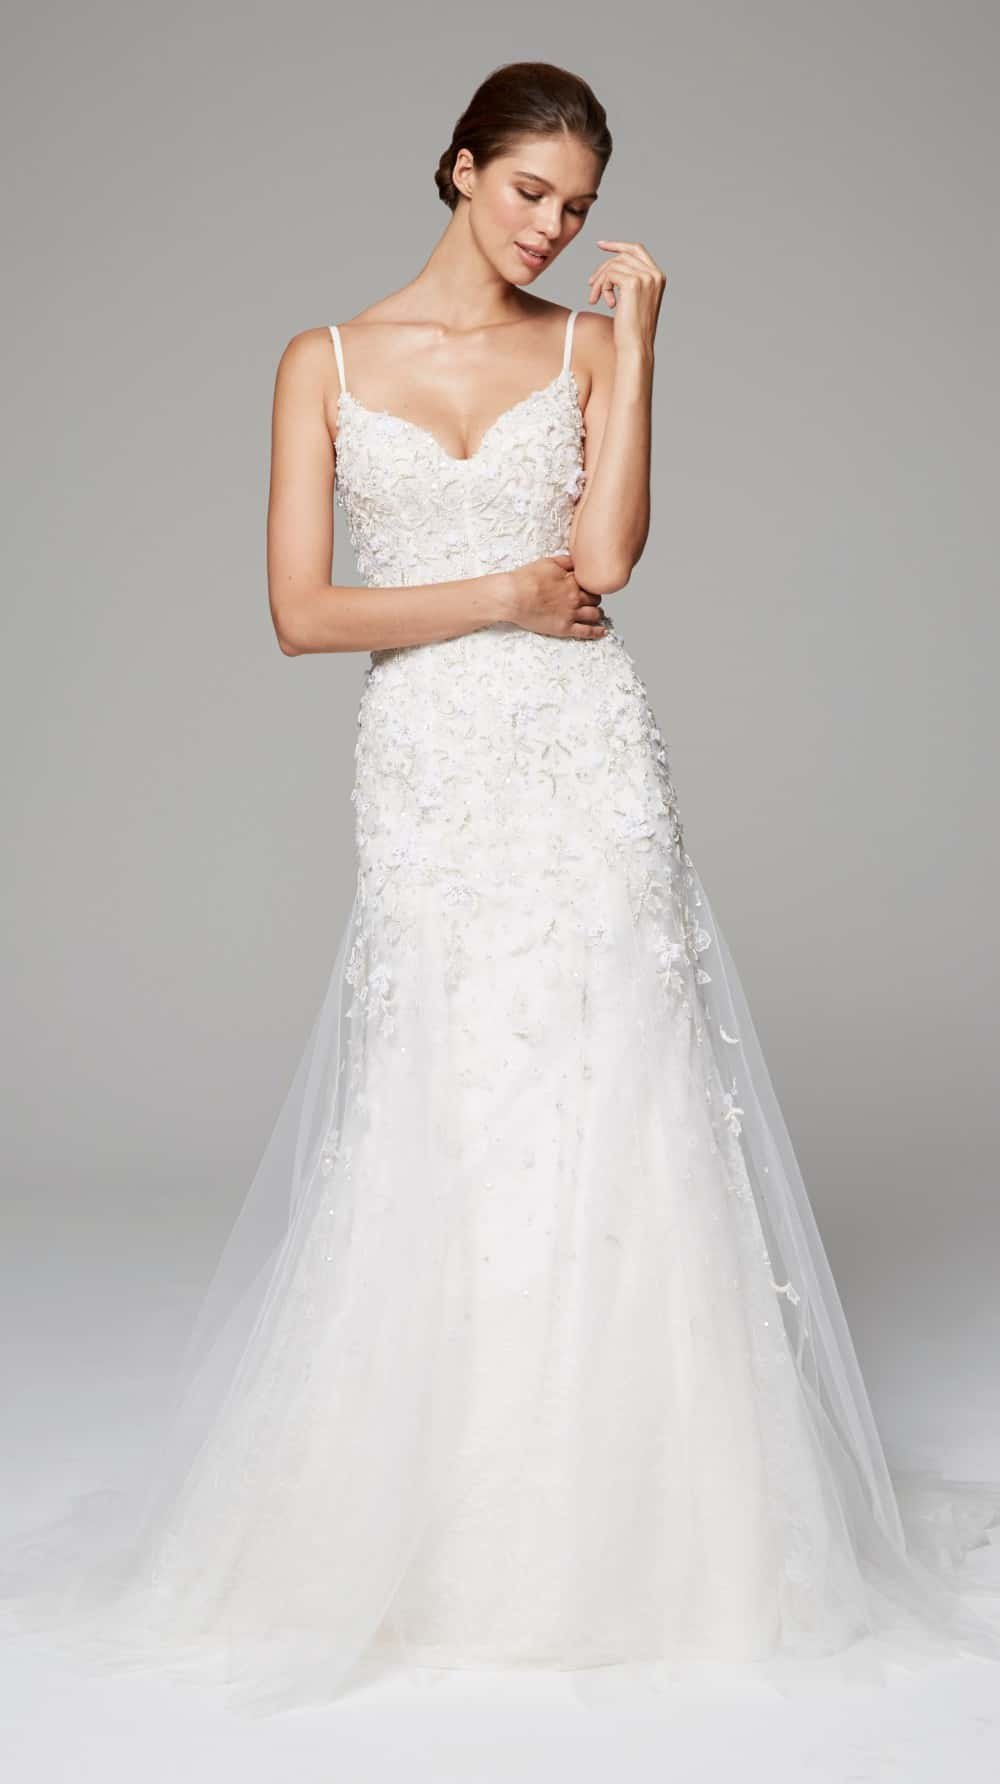 gwendolyn-anne-barge-embellished-wedding dress